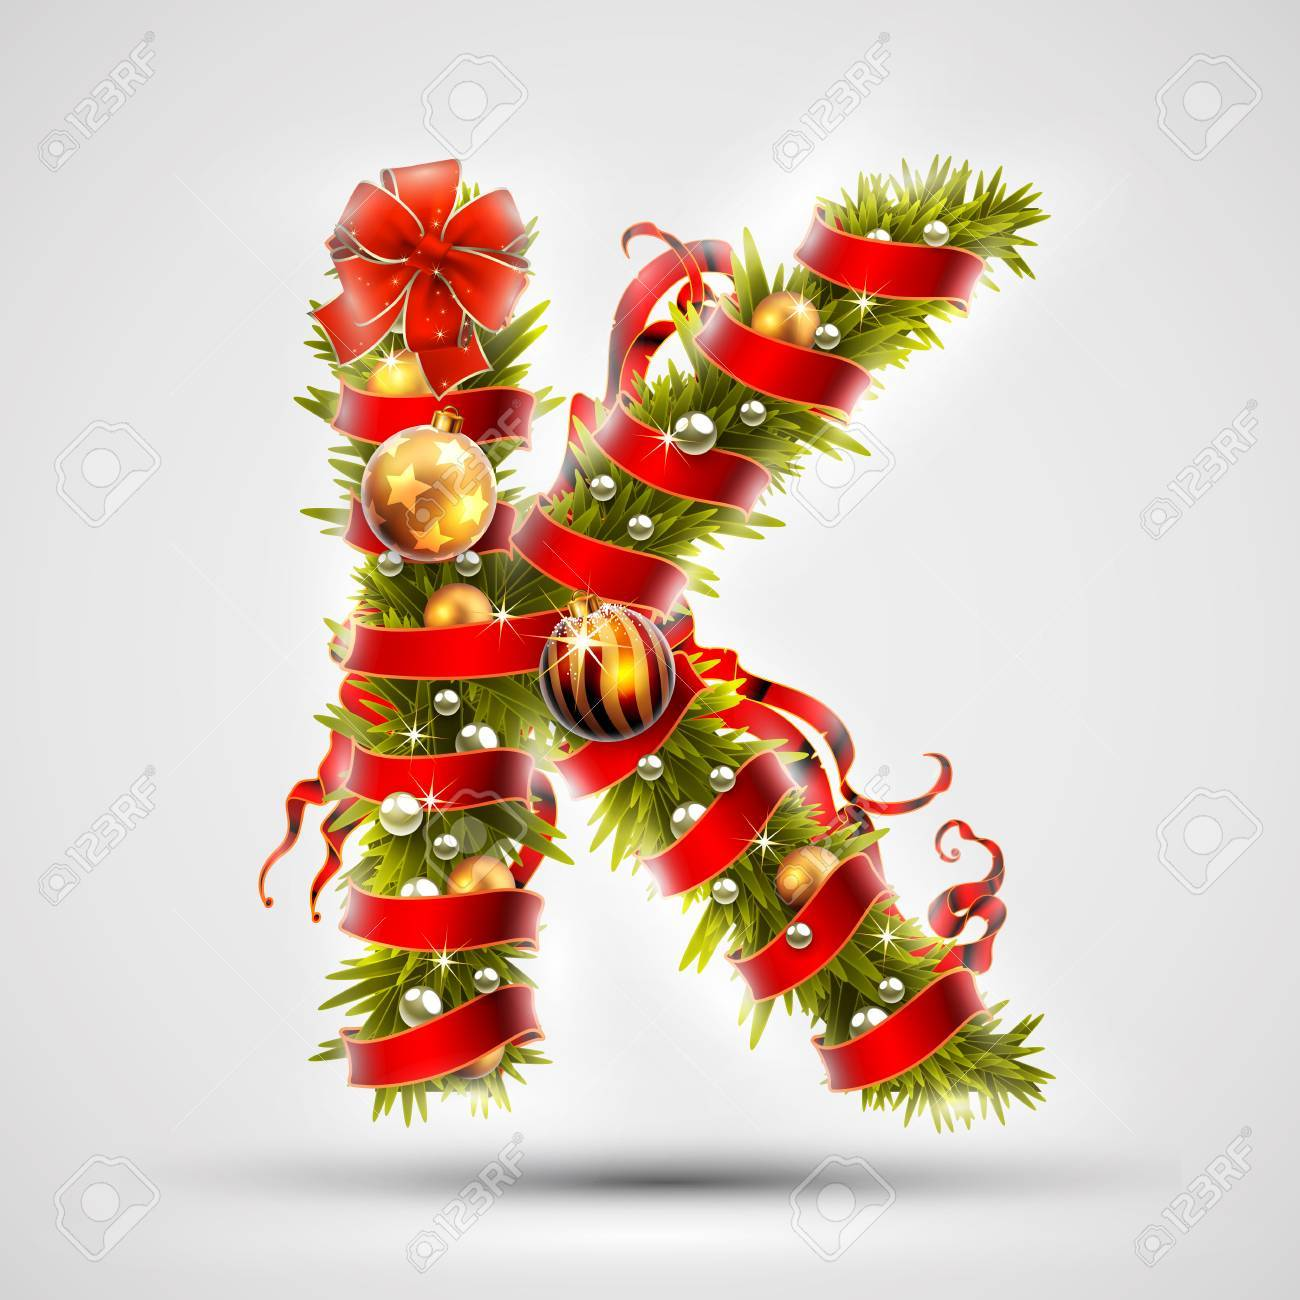 Christmas Font Letter K Of Christmas Tree Branches Decorated